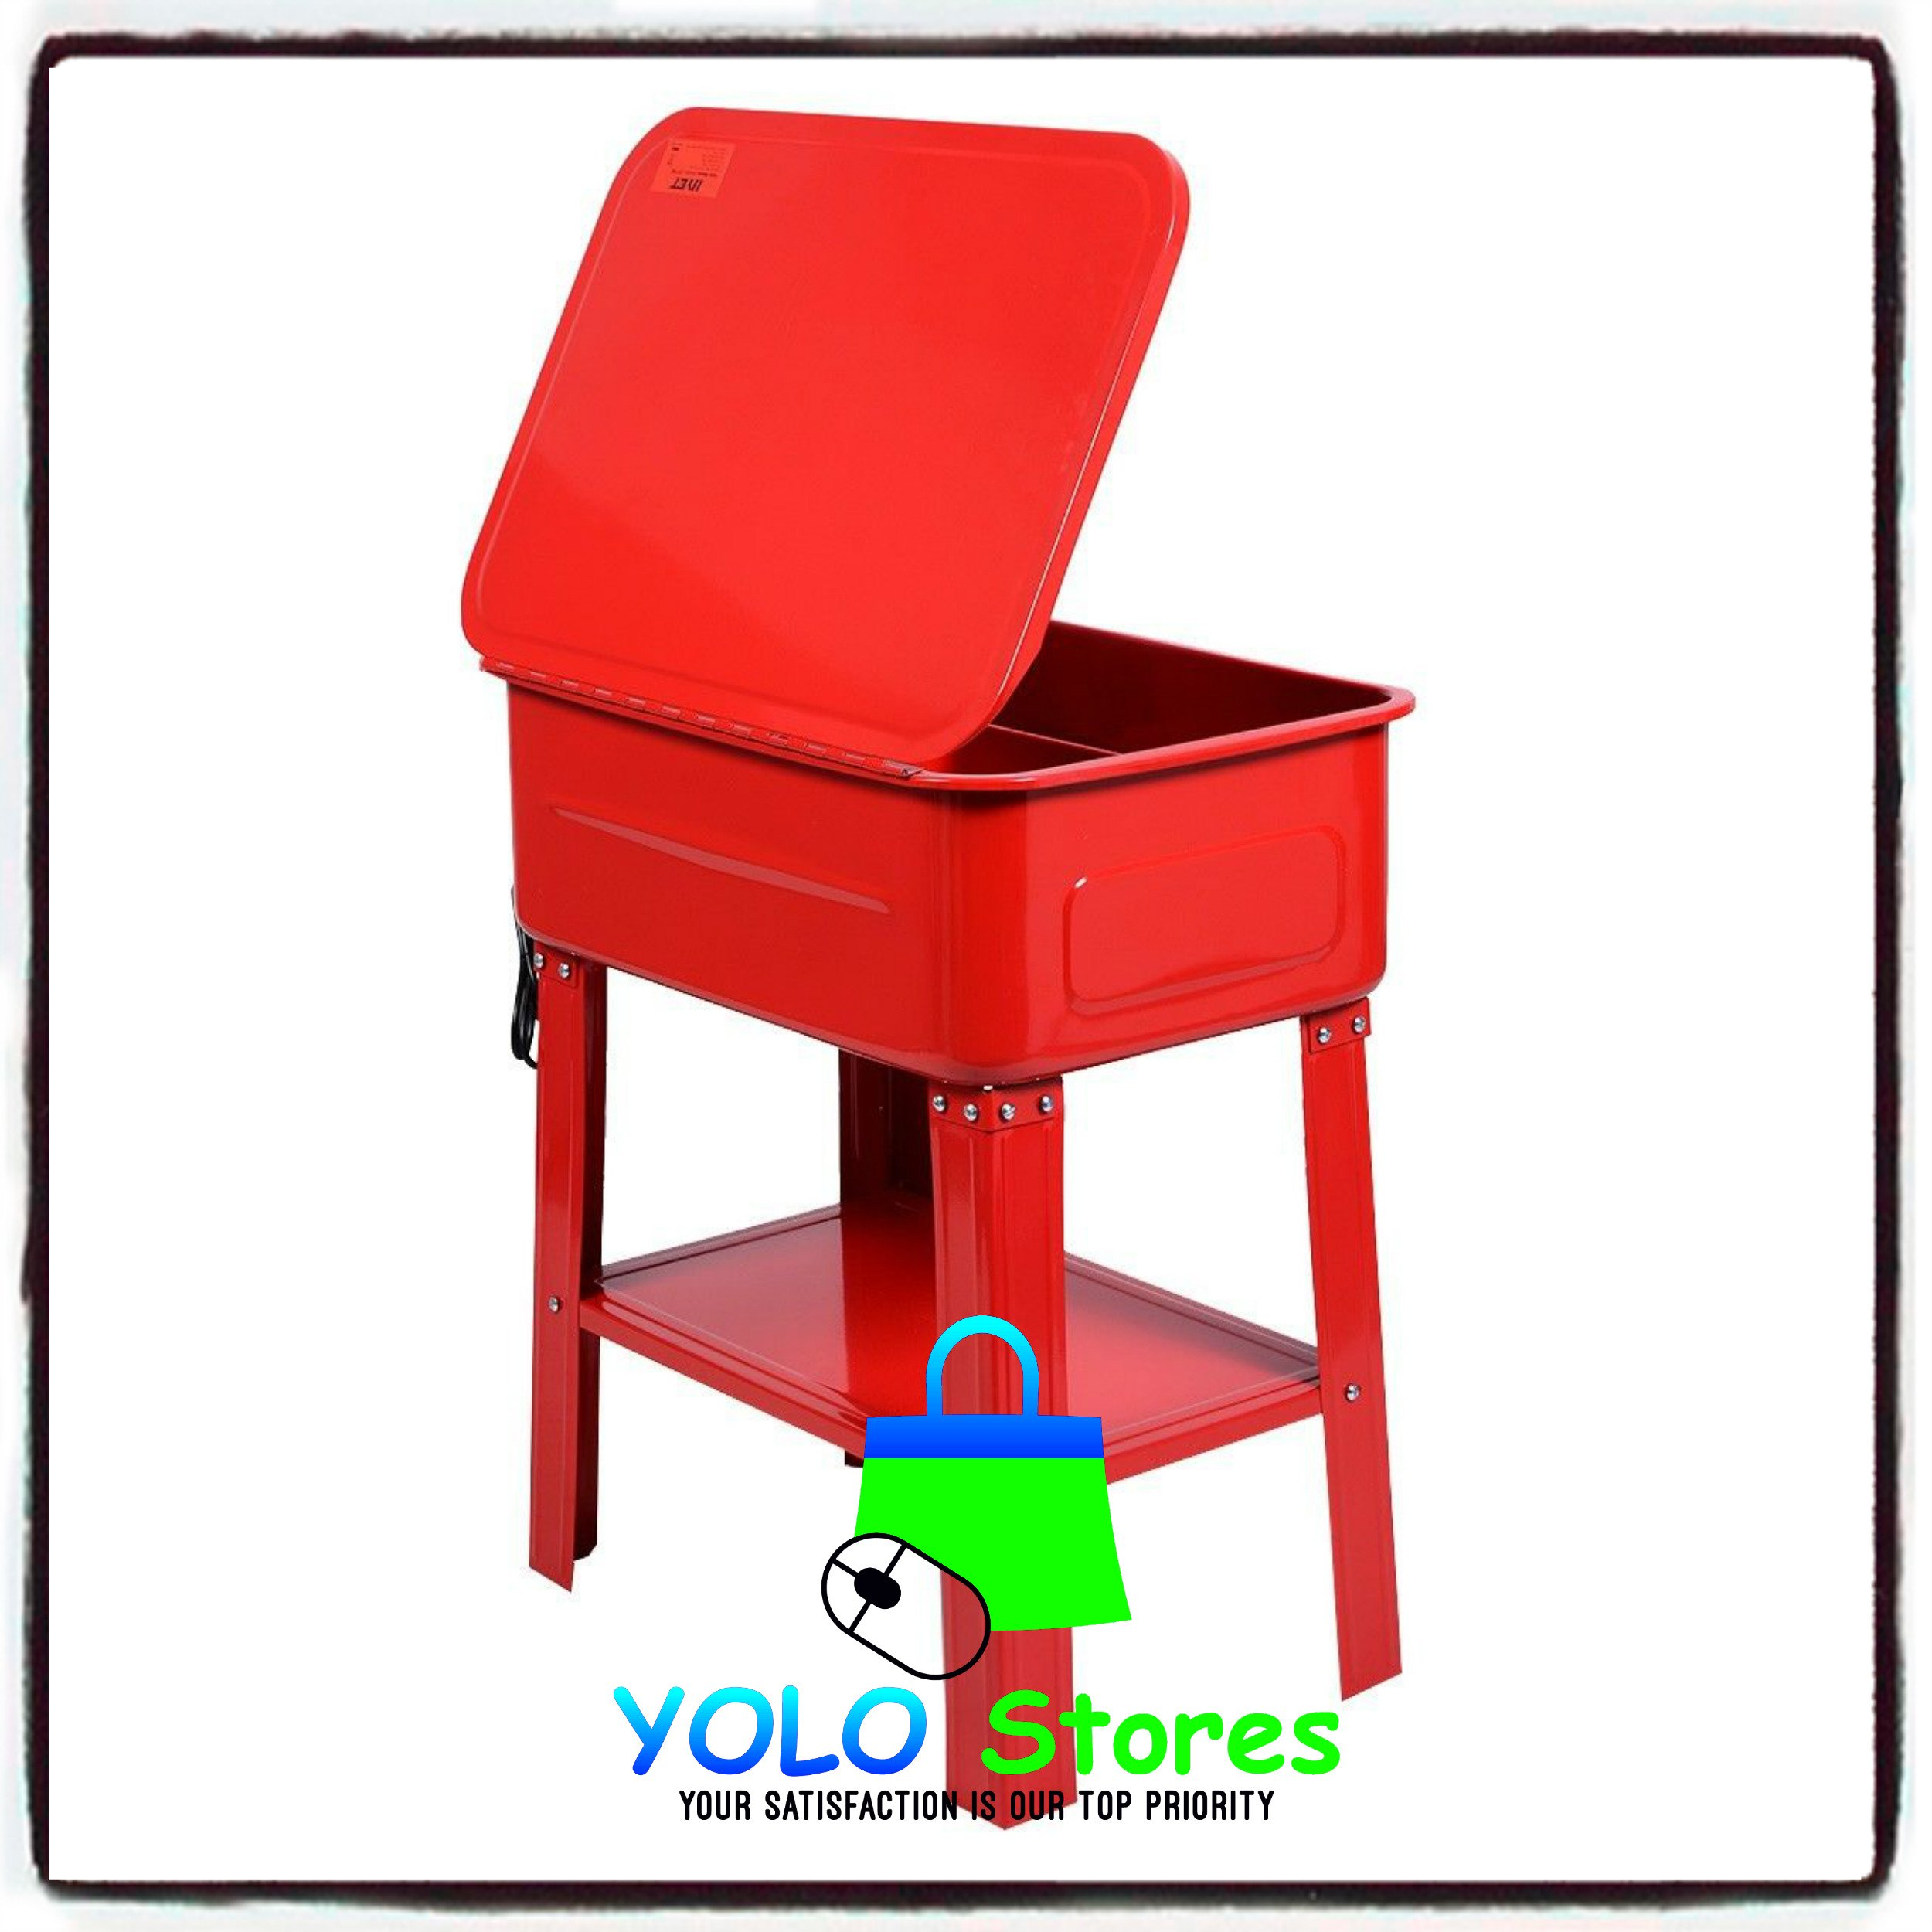 Automotive Parts Washer Cleaner Heavy Duty Electric Solvent Pump 20 Gallon Auto Tools By YOLO Stores by YOLO Stores (Image #8)